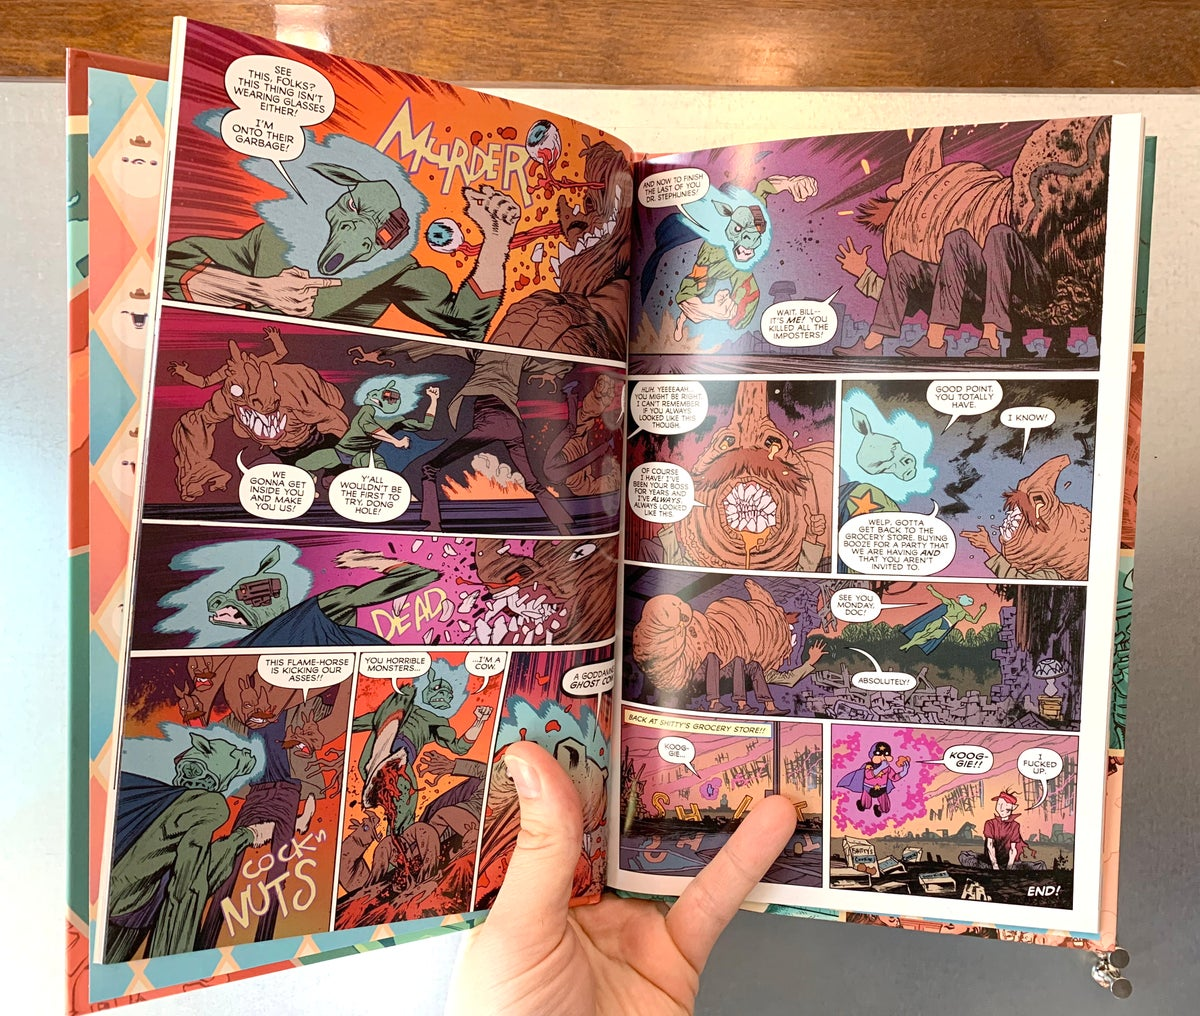 GOD HATES ASTRONAUTS presents: 3-D Cowboy's 2-D Spectacular Hardcover